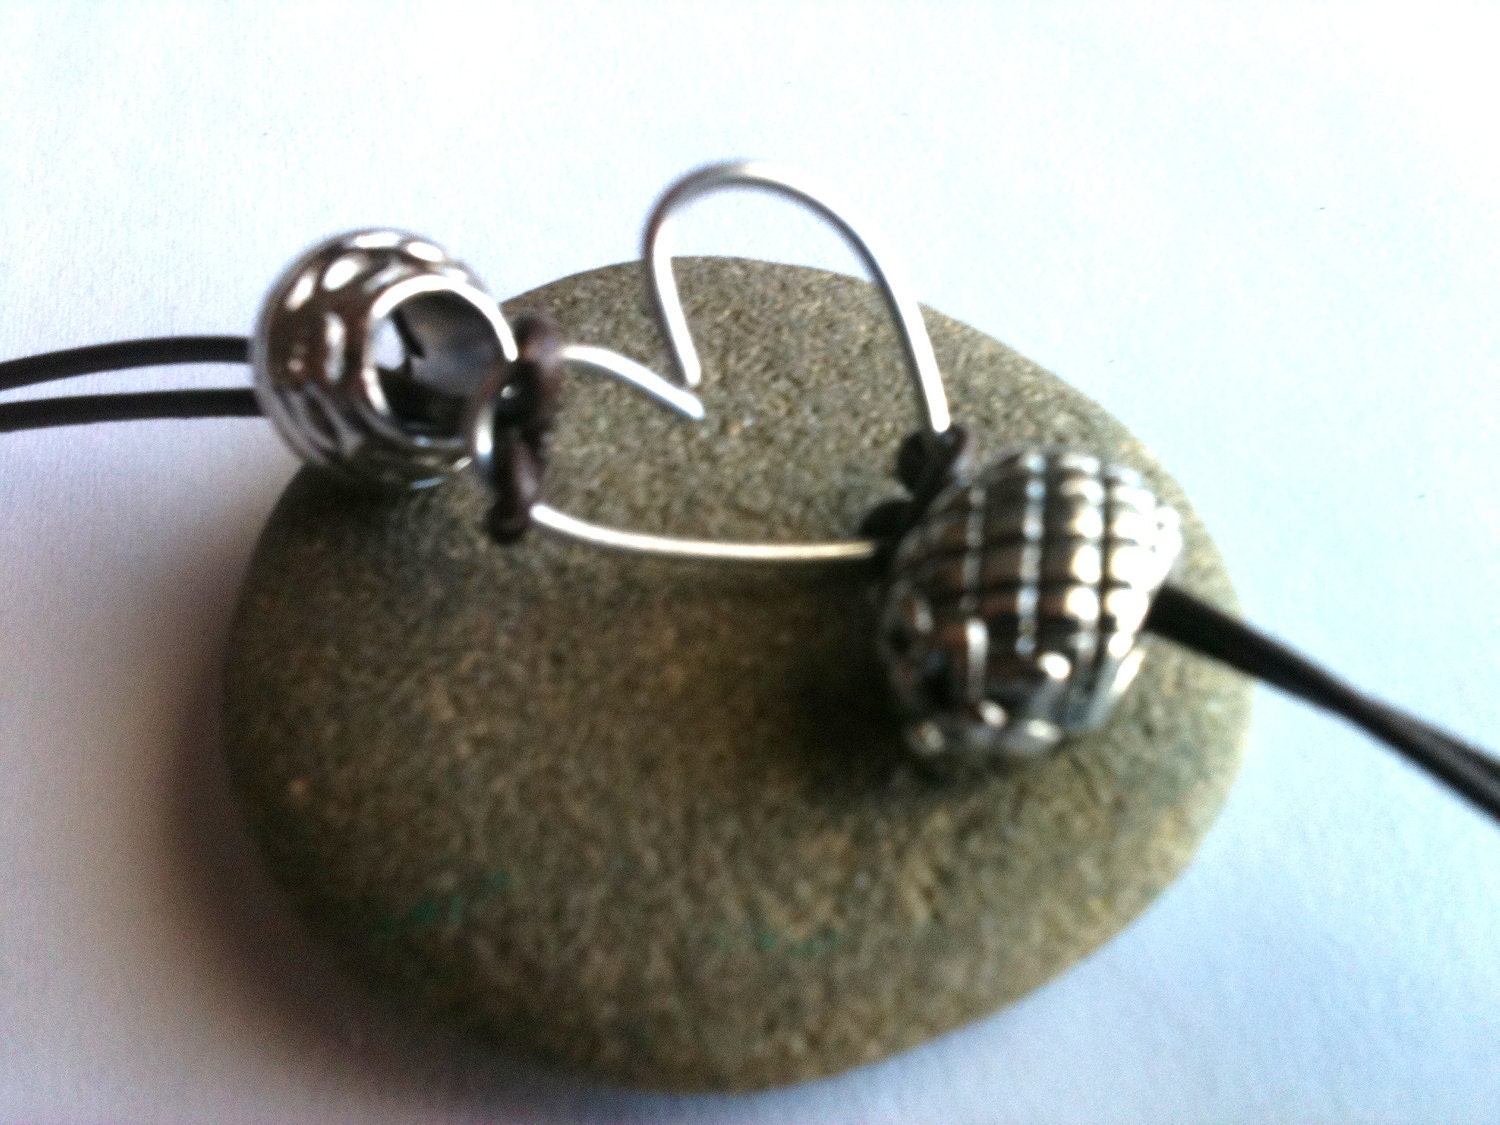 valentine's day, heart jewery, leather jewelry, Pandora style charms, wire jewelry, silver beads, flower beads, leather cord